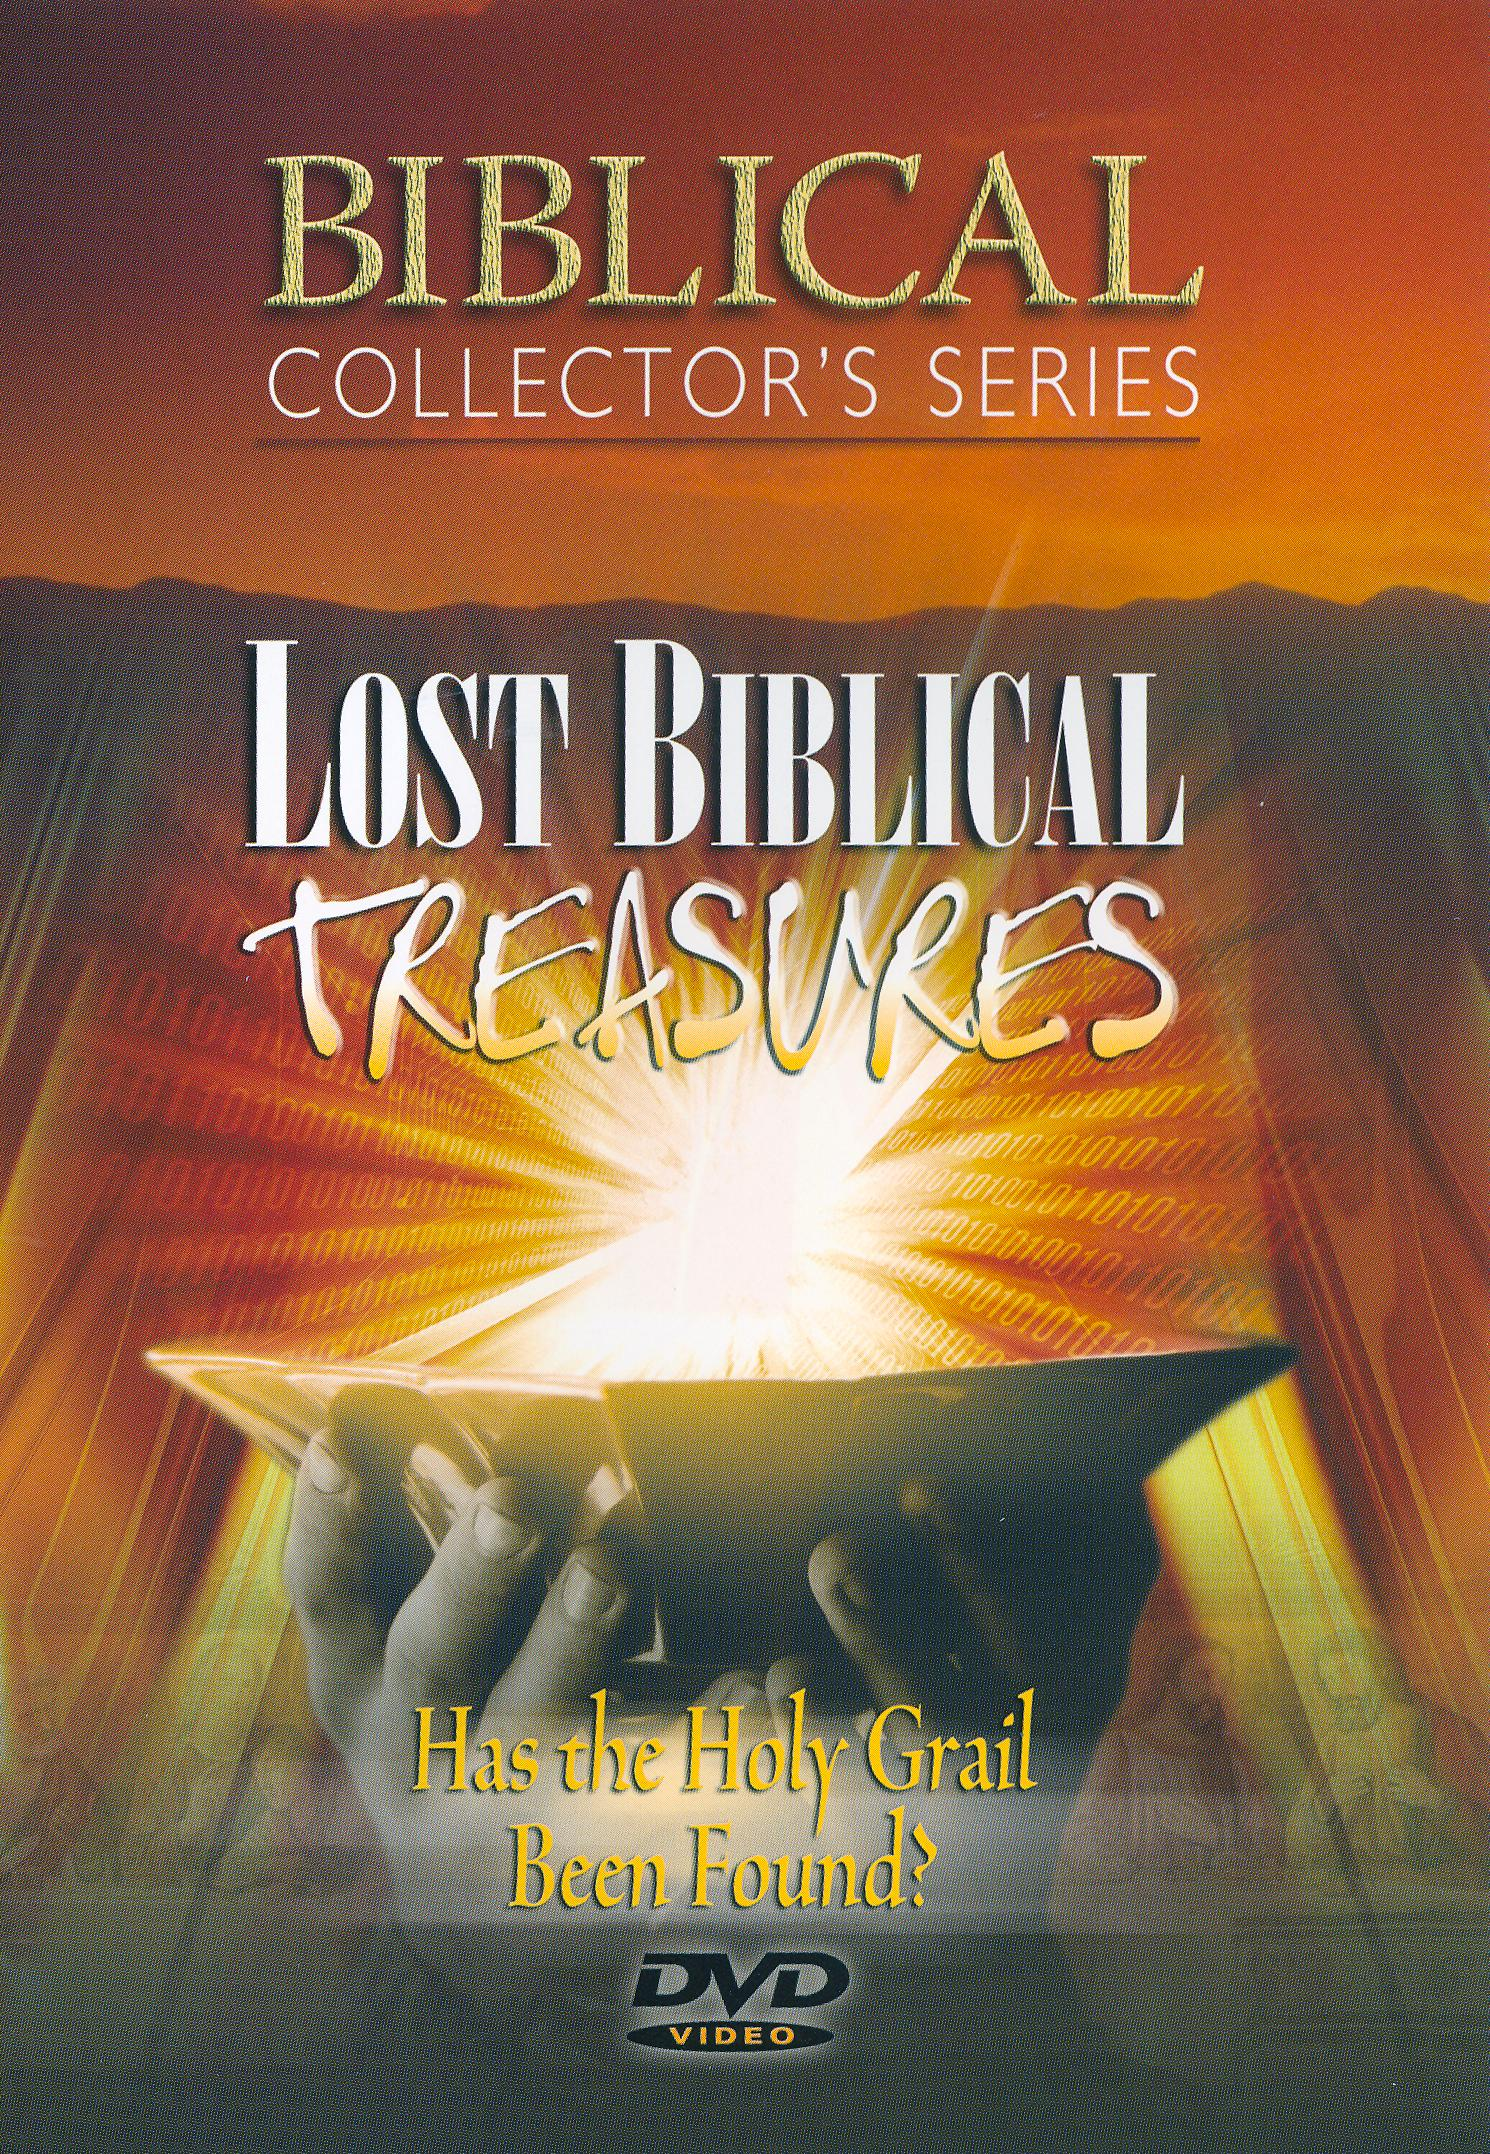 Biblical Collector's Series: Lost Biblical Treasures